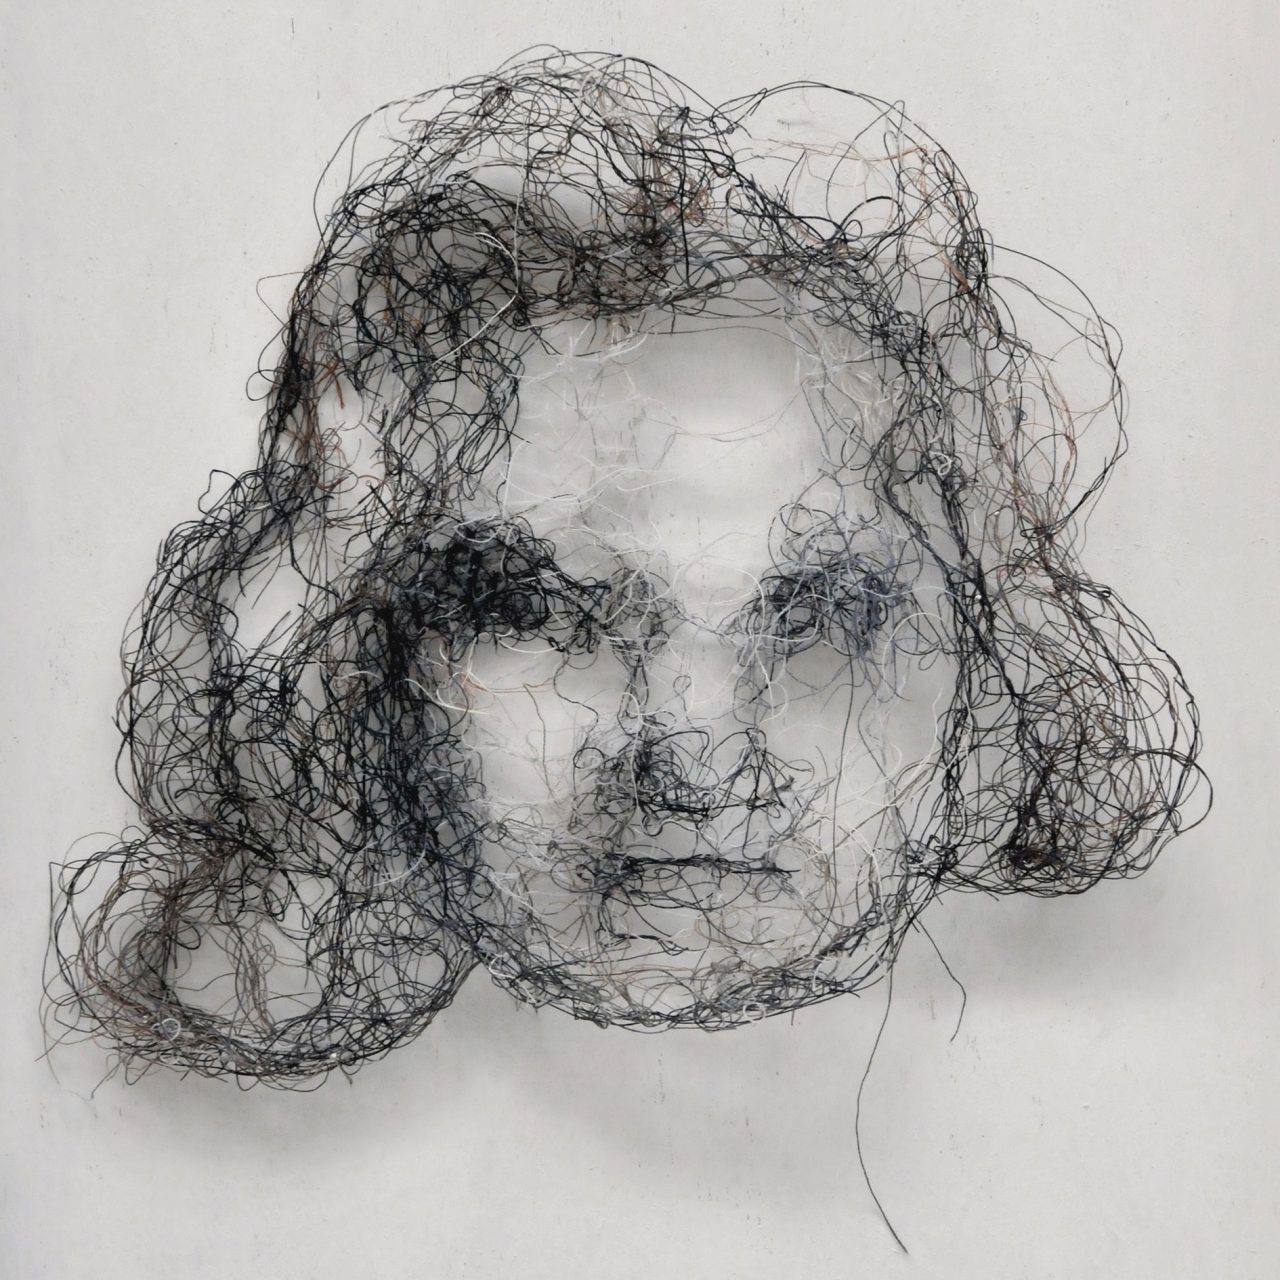 prtrait, threads, 19cm x 18cm x 1,5cm